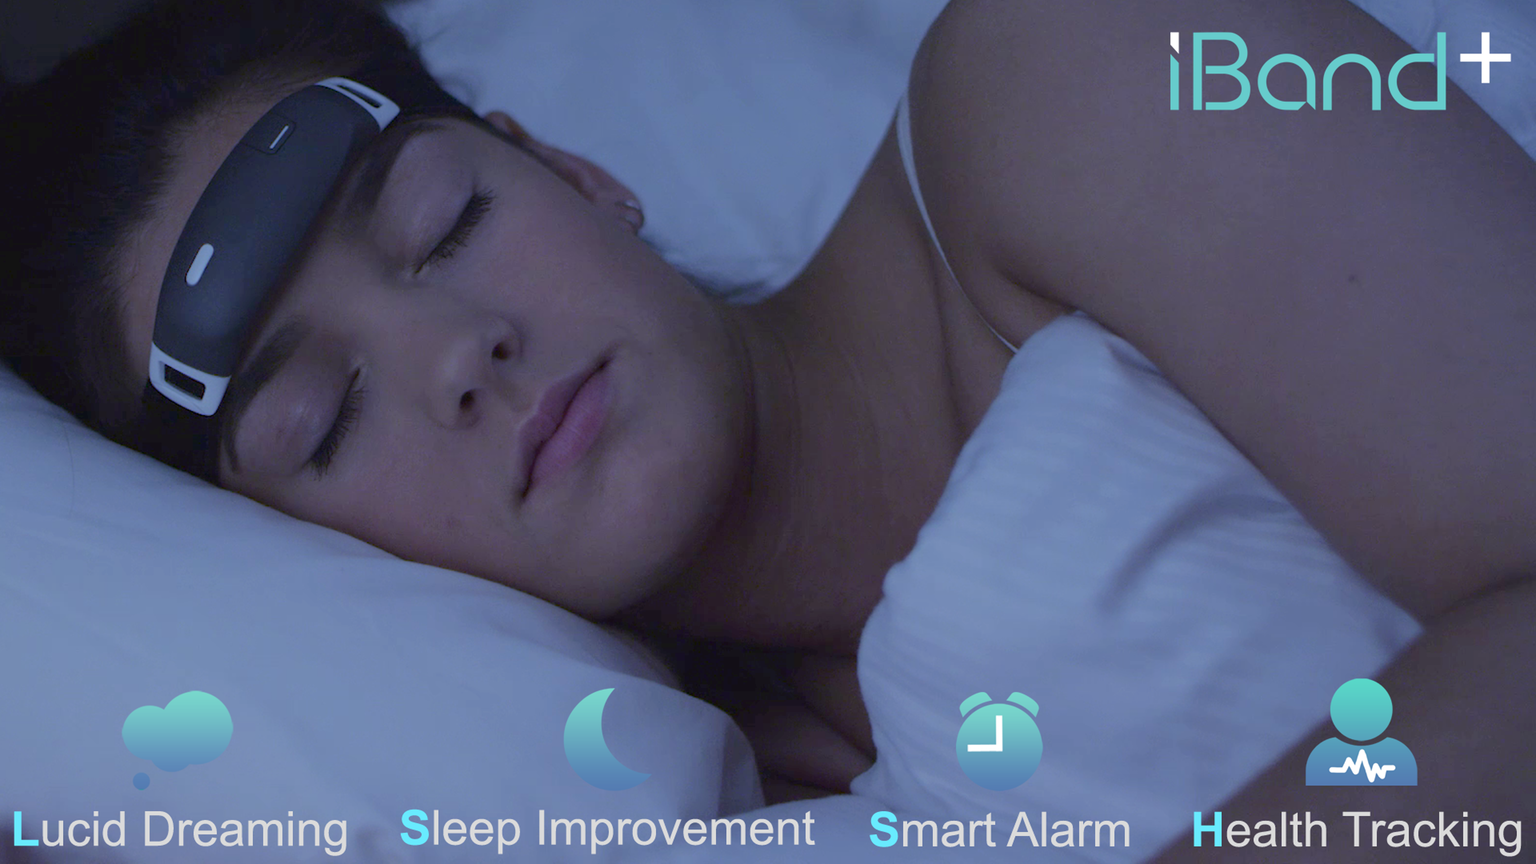 iband iband+ ibandplus improve sleep patterns and induce lucid dreams